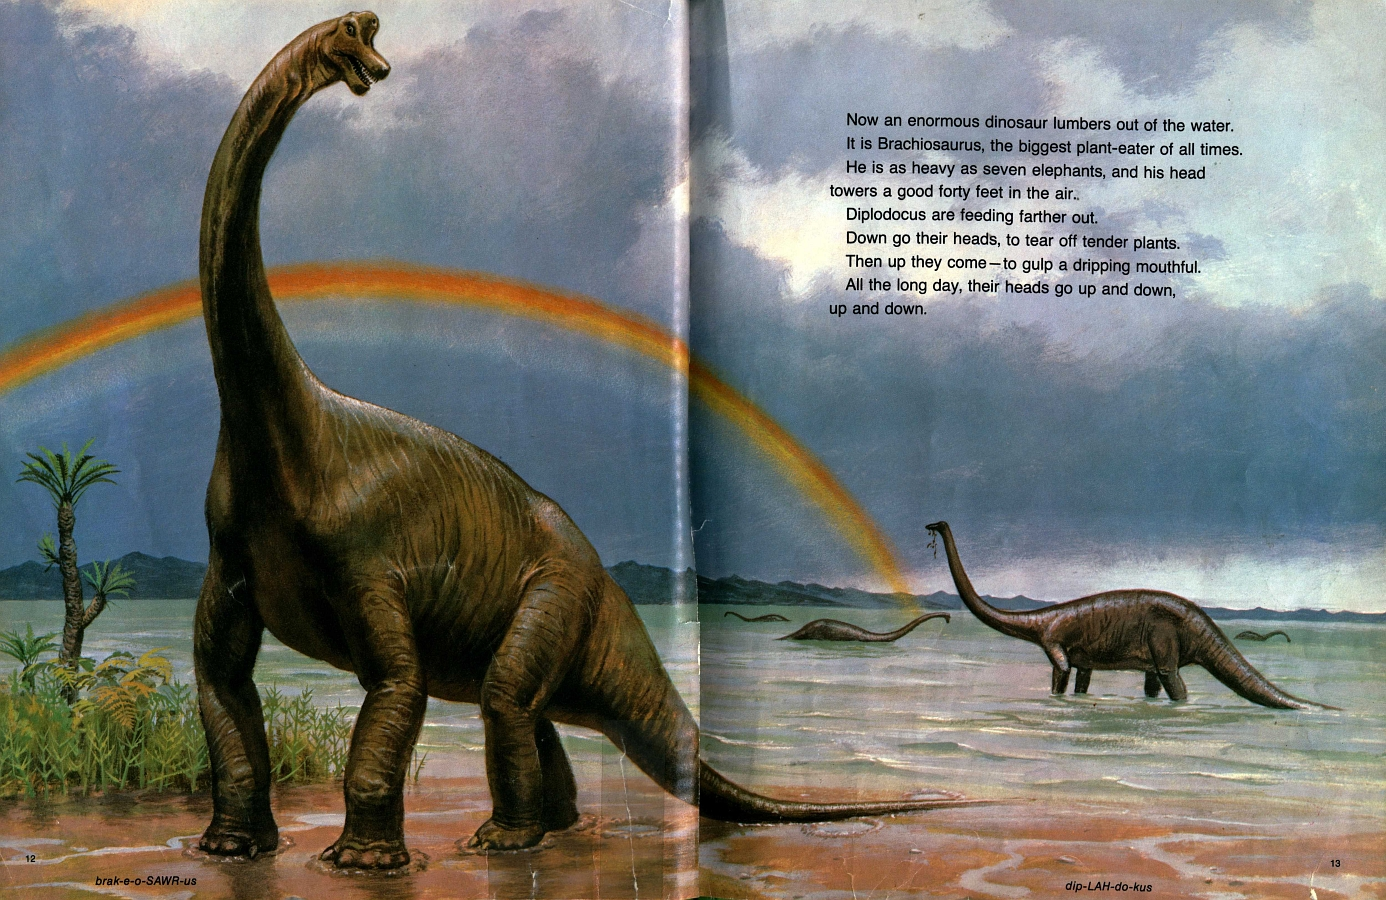 Fun Facts about Iguanodon